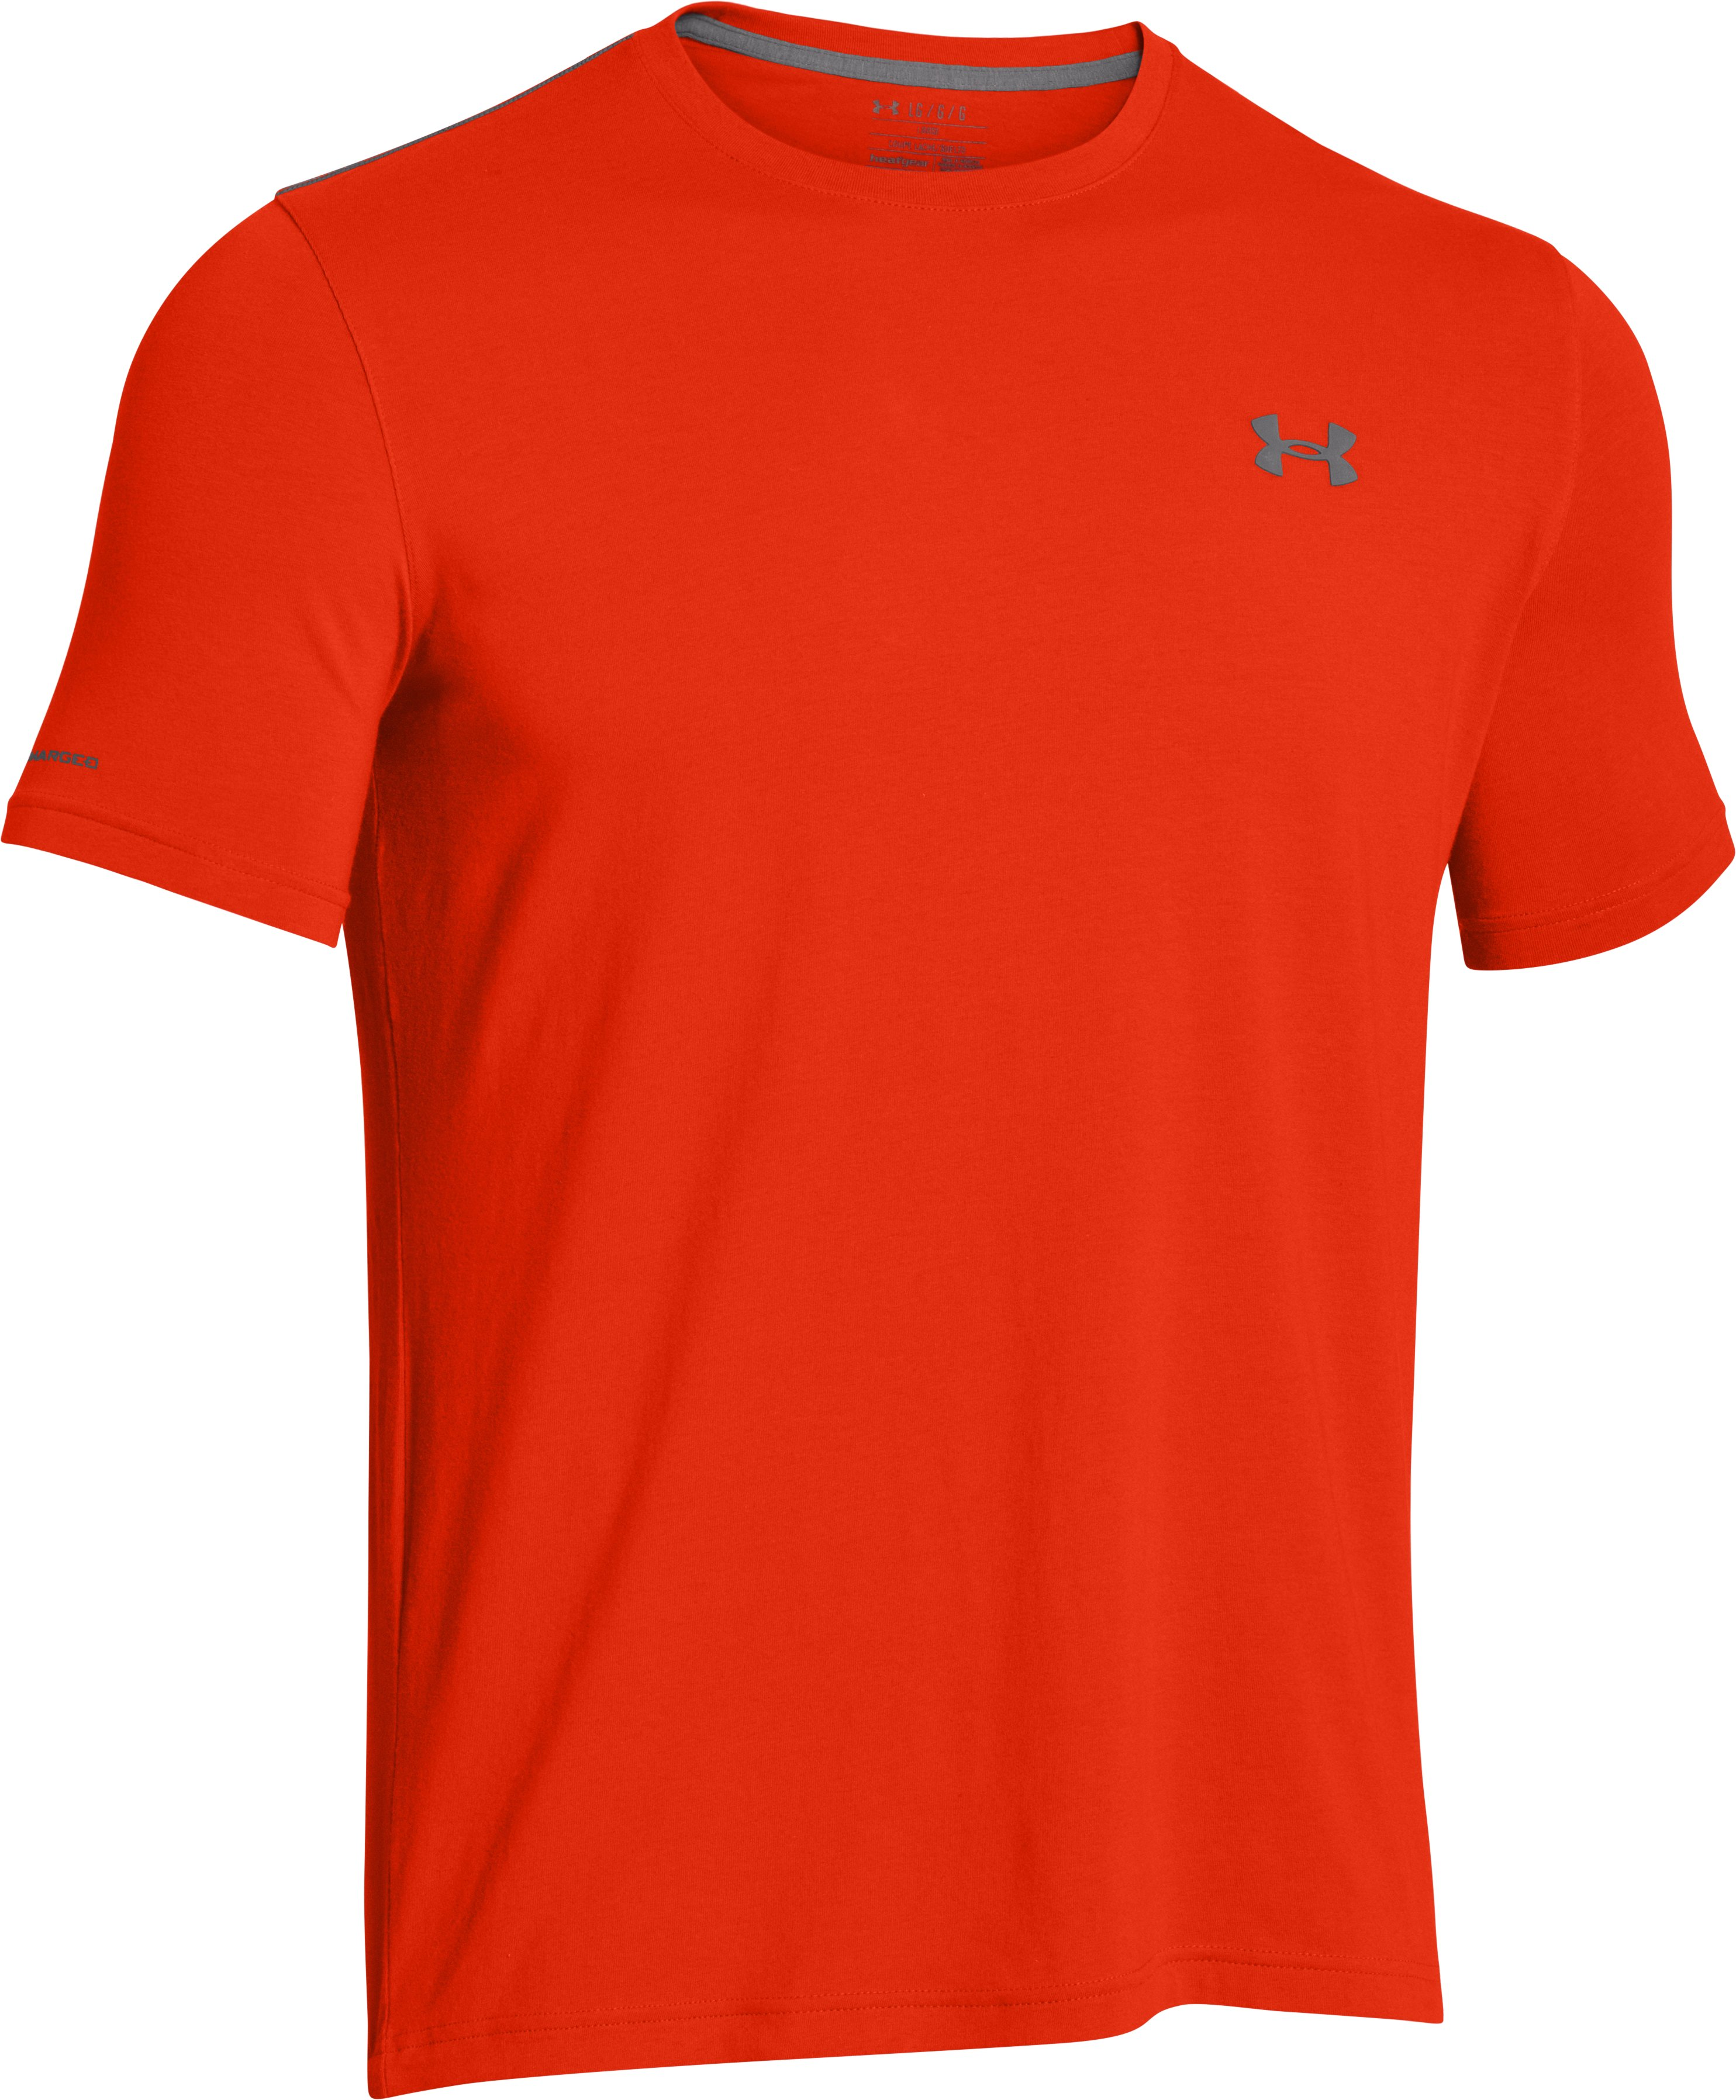 Men's Charged Cotton® T-Shirt, Volcano